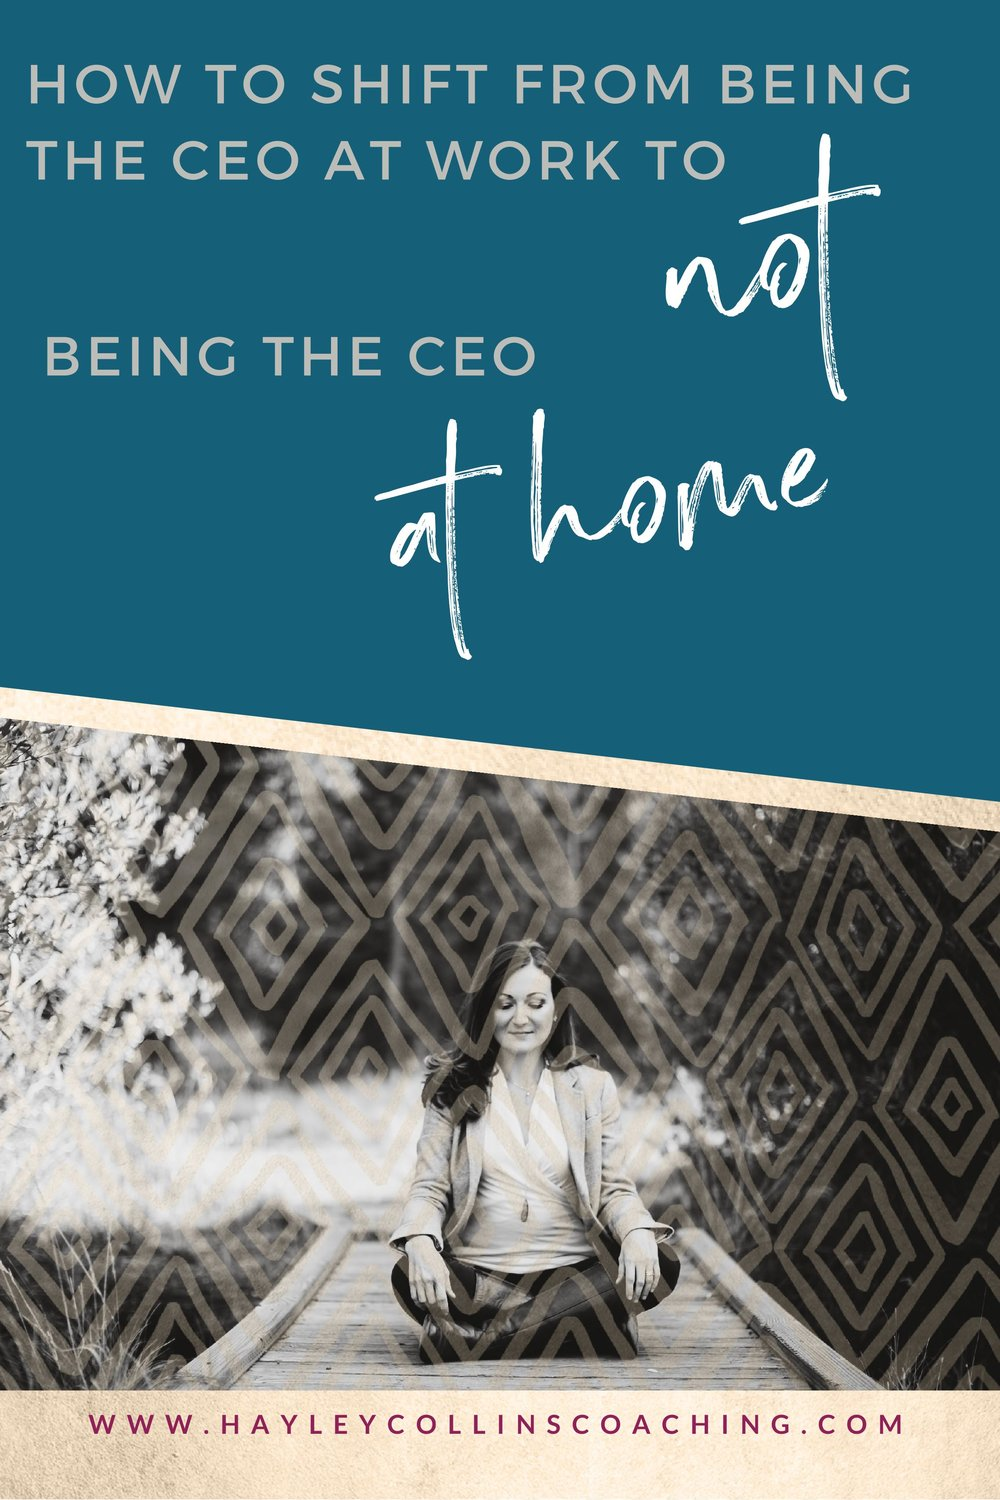 How to Shift From Being the CEO at Work to NOT Being the CEO at Home | Hayley Collins Coaching